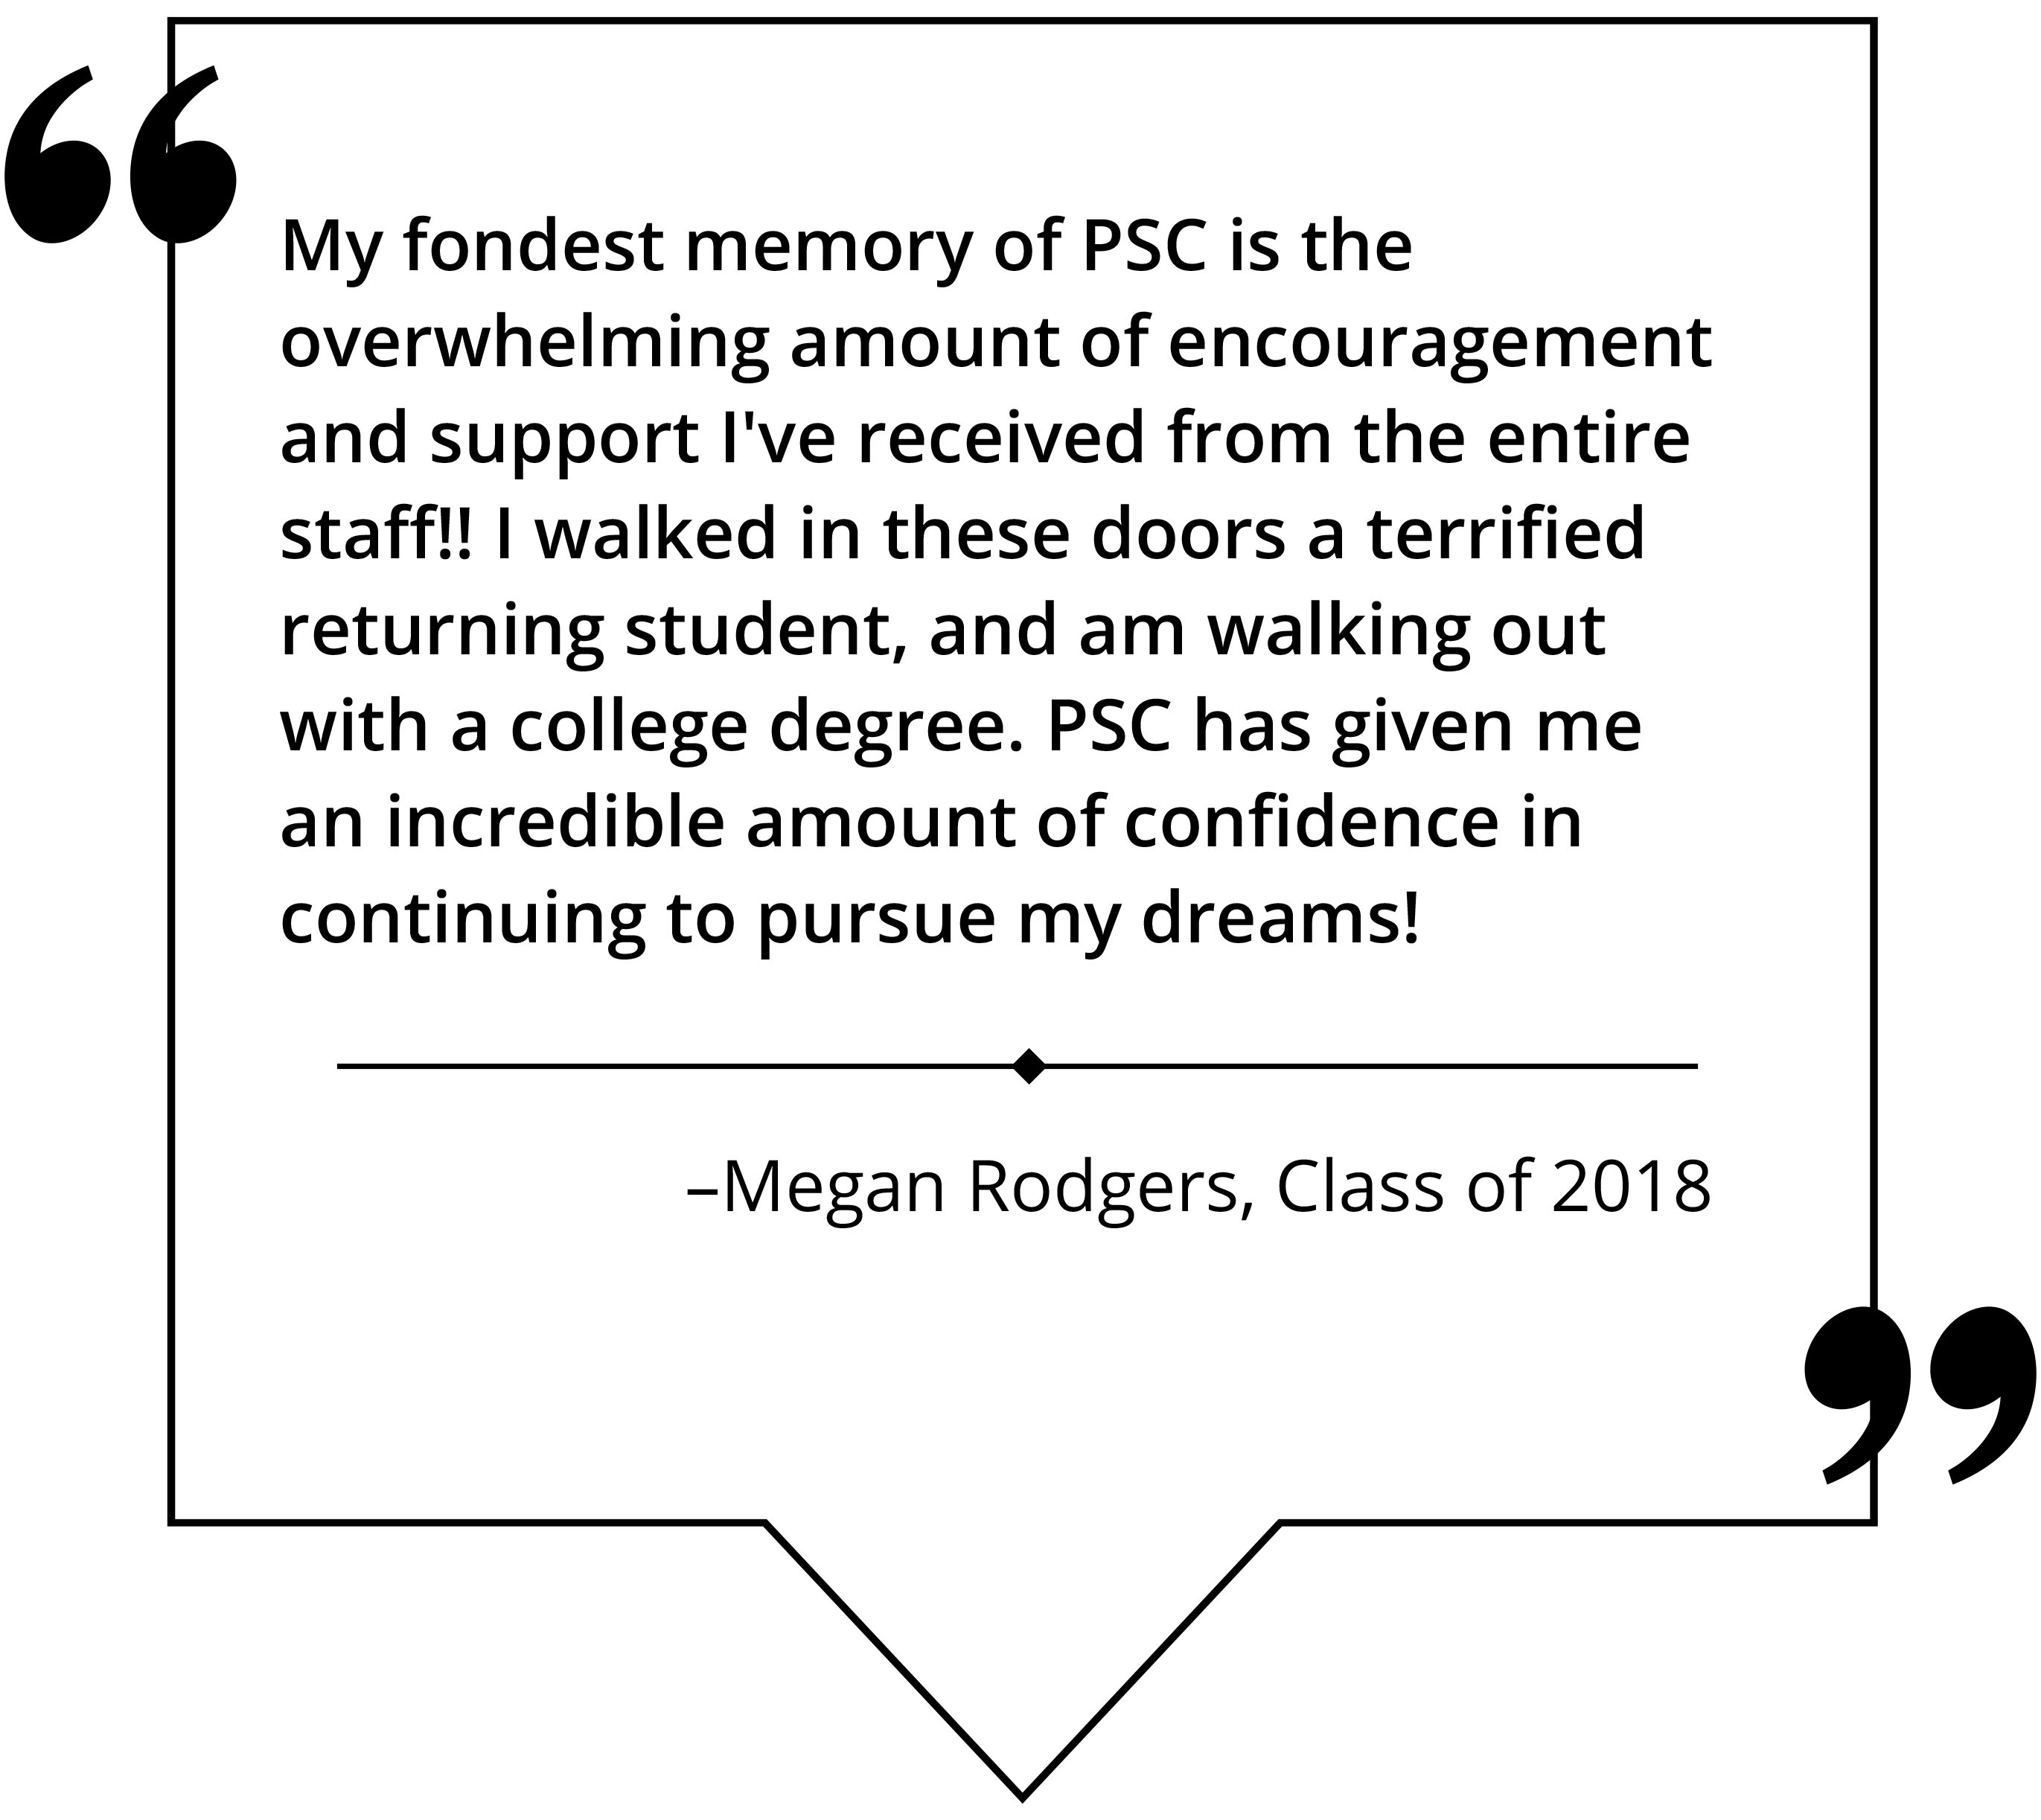 Megan Rodgers, Class of 2018